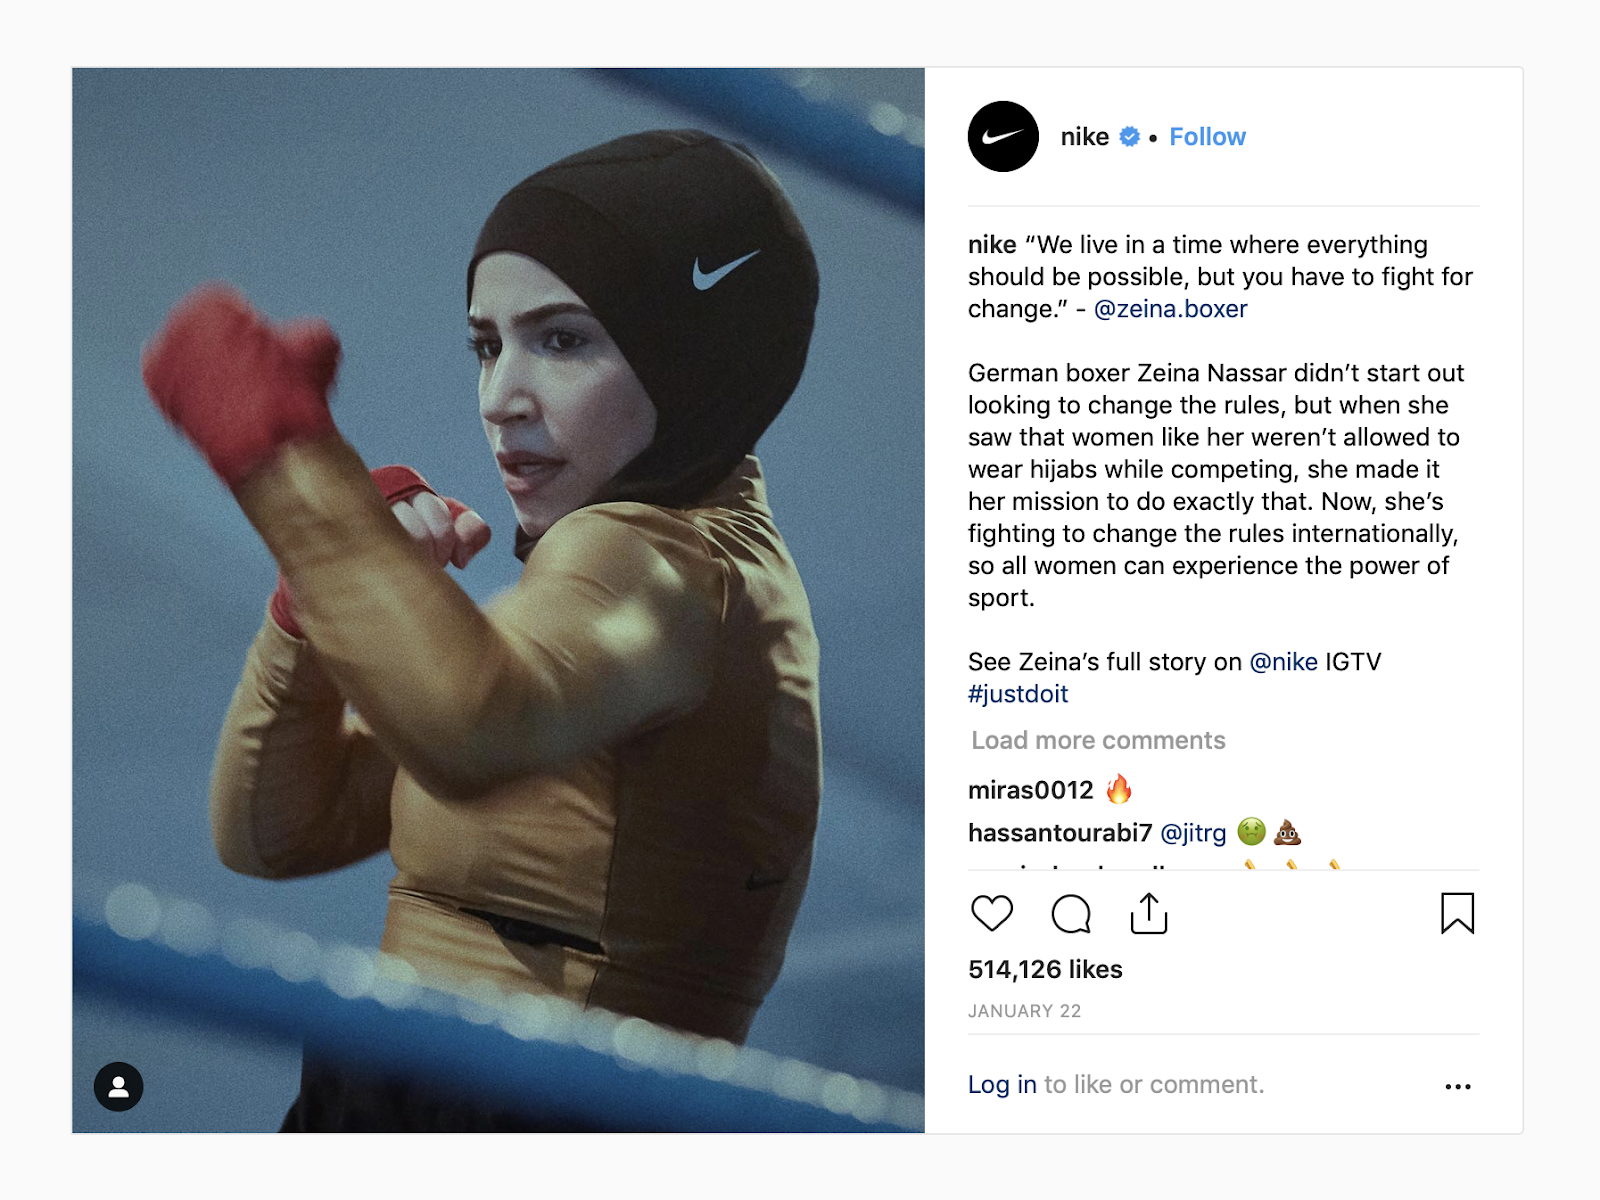 "Nike instagram caption reads: ""'We live in a time where everything should be possible, but you have to fight for change.' -@zeina.boxer German boxer Zeina Nassar didn't start out looking to change the rules, but when she saw that women like her weren't allowed to wear hijabs while competing, she made it her mission to do exactly that. Now she's fighting to change the rules internationally, so all women can experience the power of sport."""